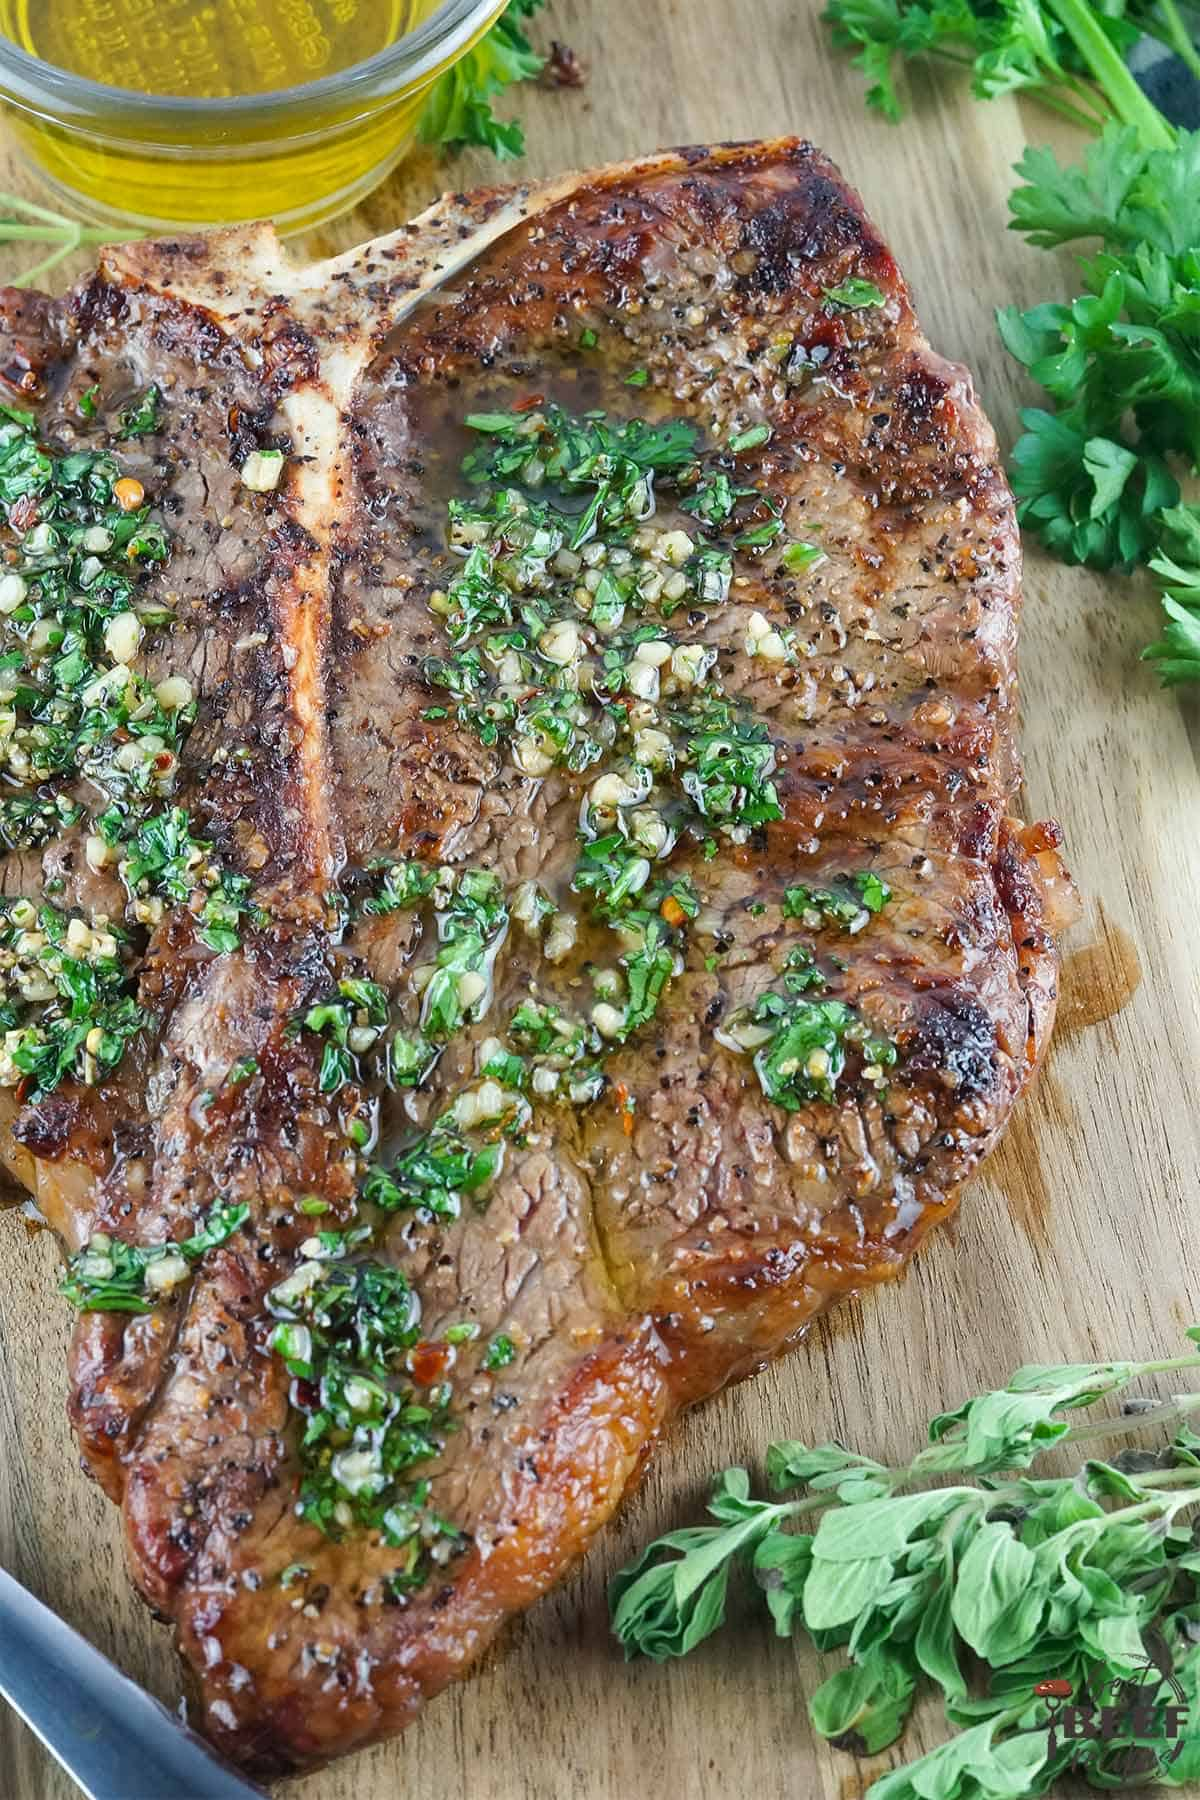 Whole grilled porterhouse steak with chimichurri sauce on a cutting board